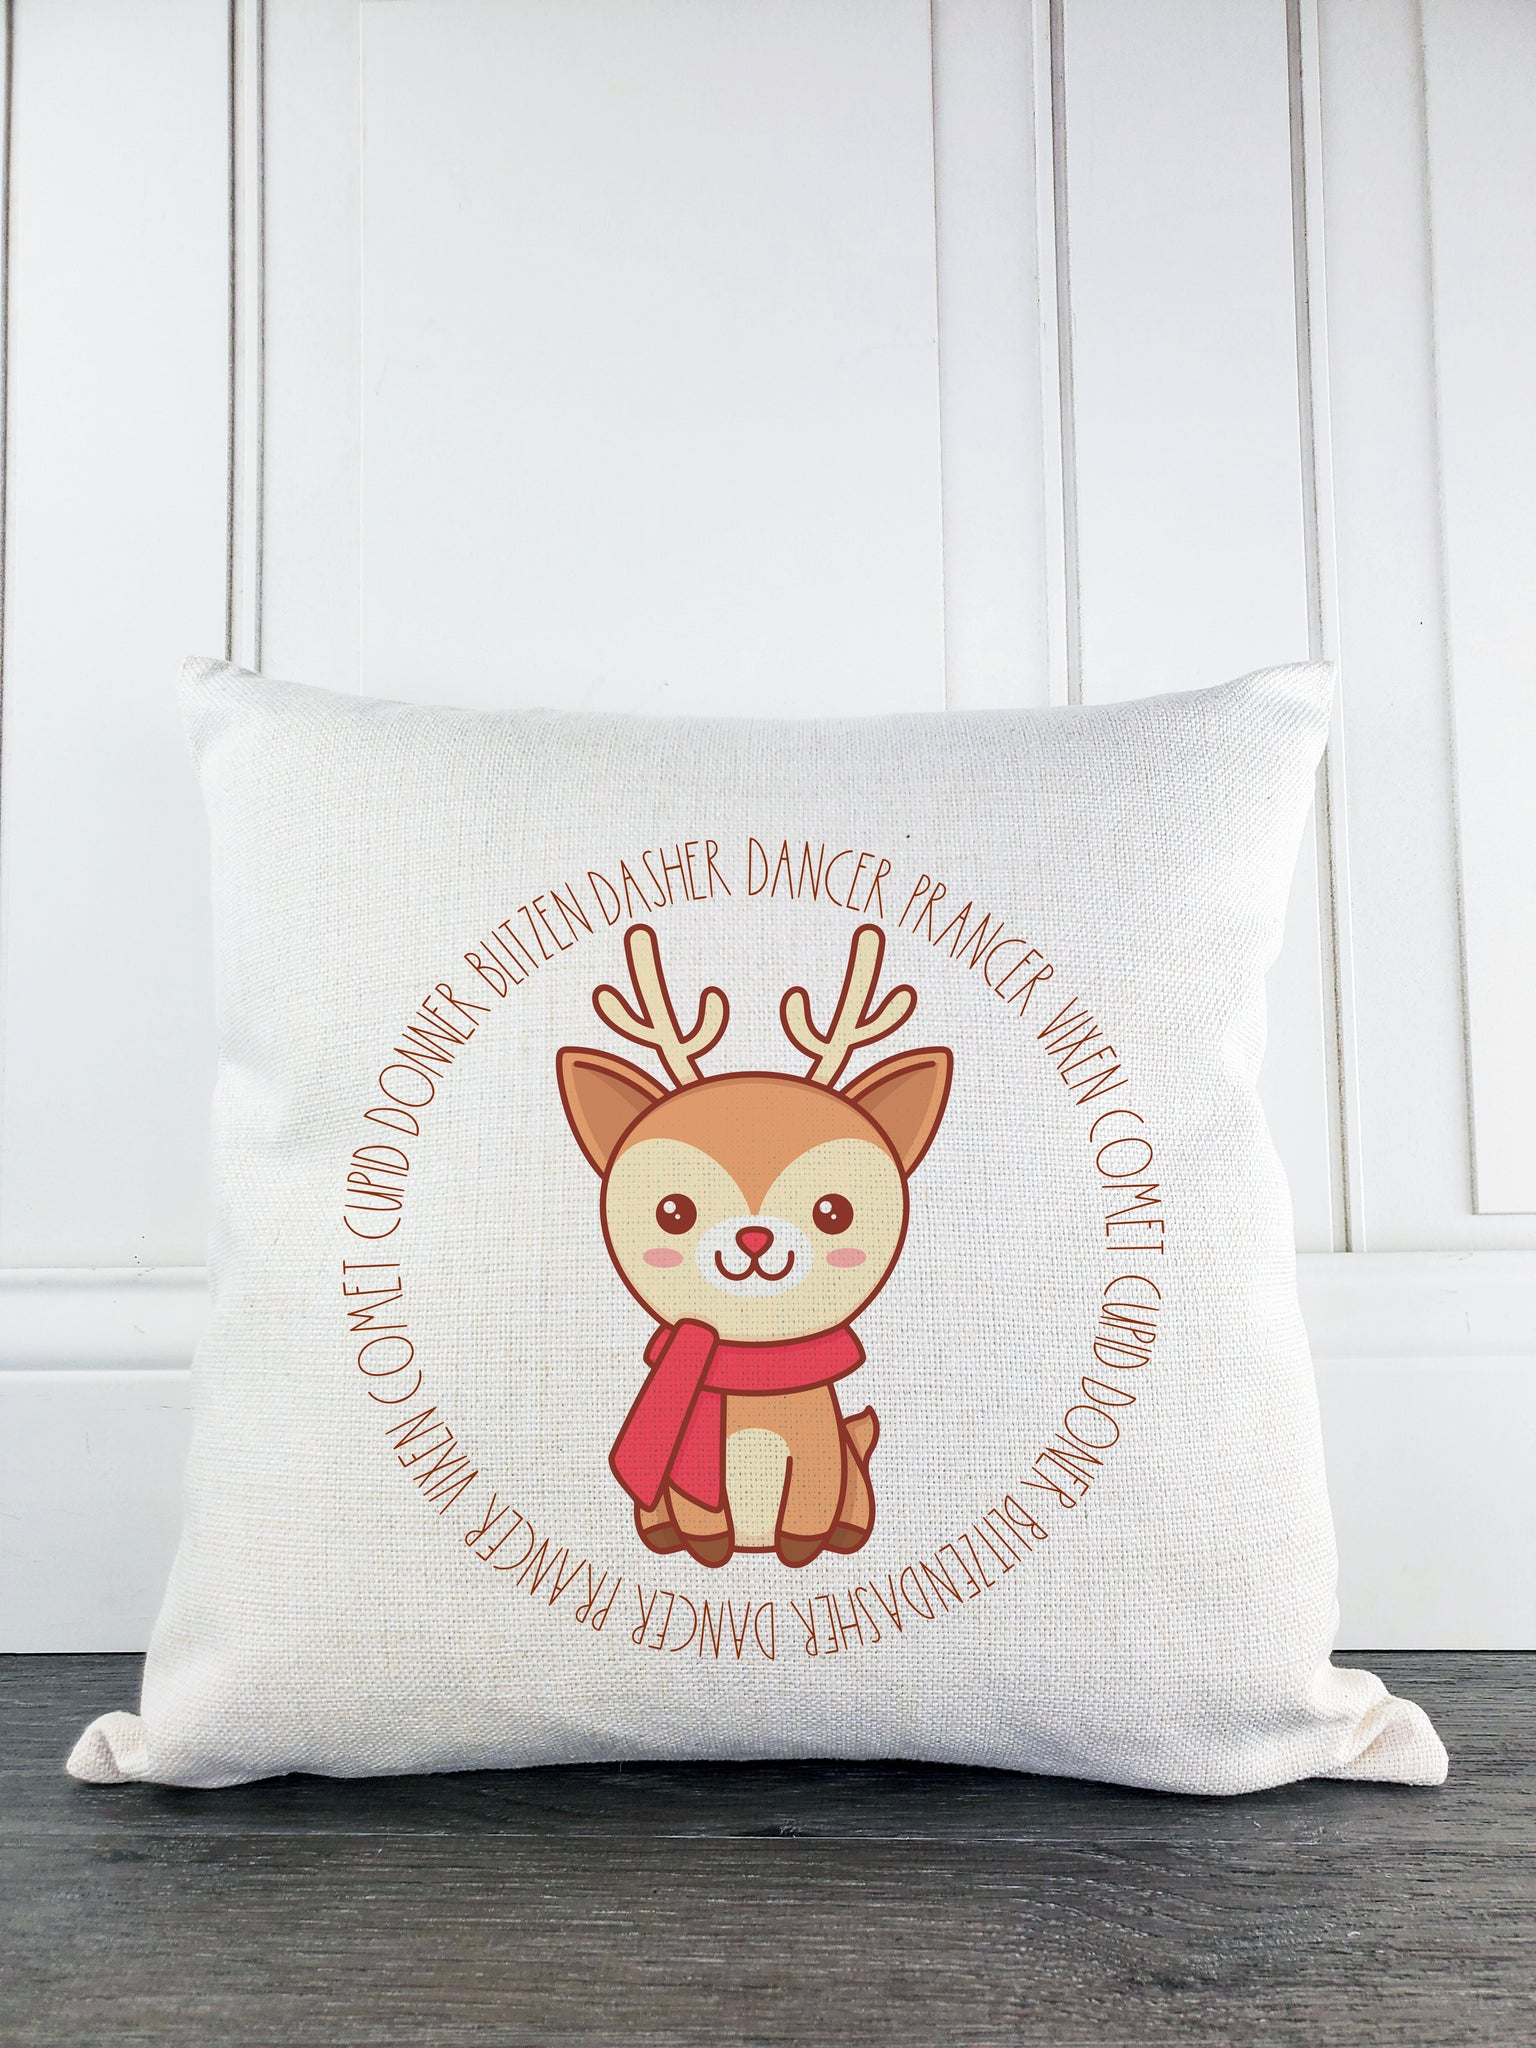 Rudolph the Reindeer with Names Rustic Farmhouse Christmas Throw Pillow - Incandescently